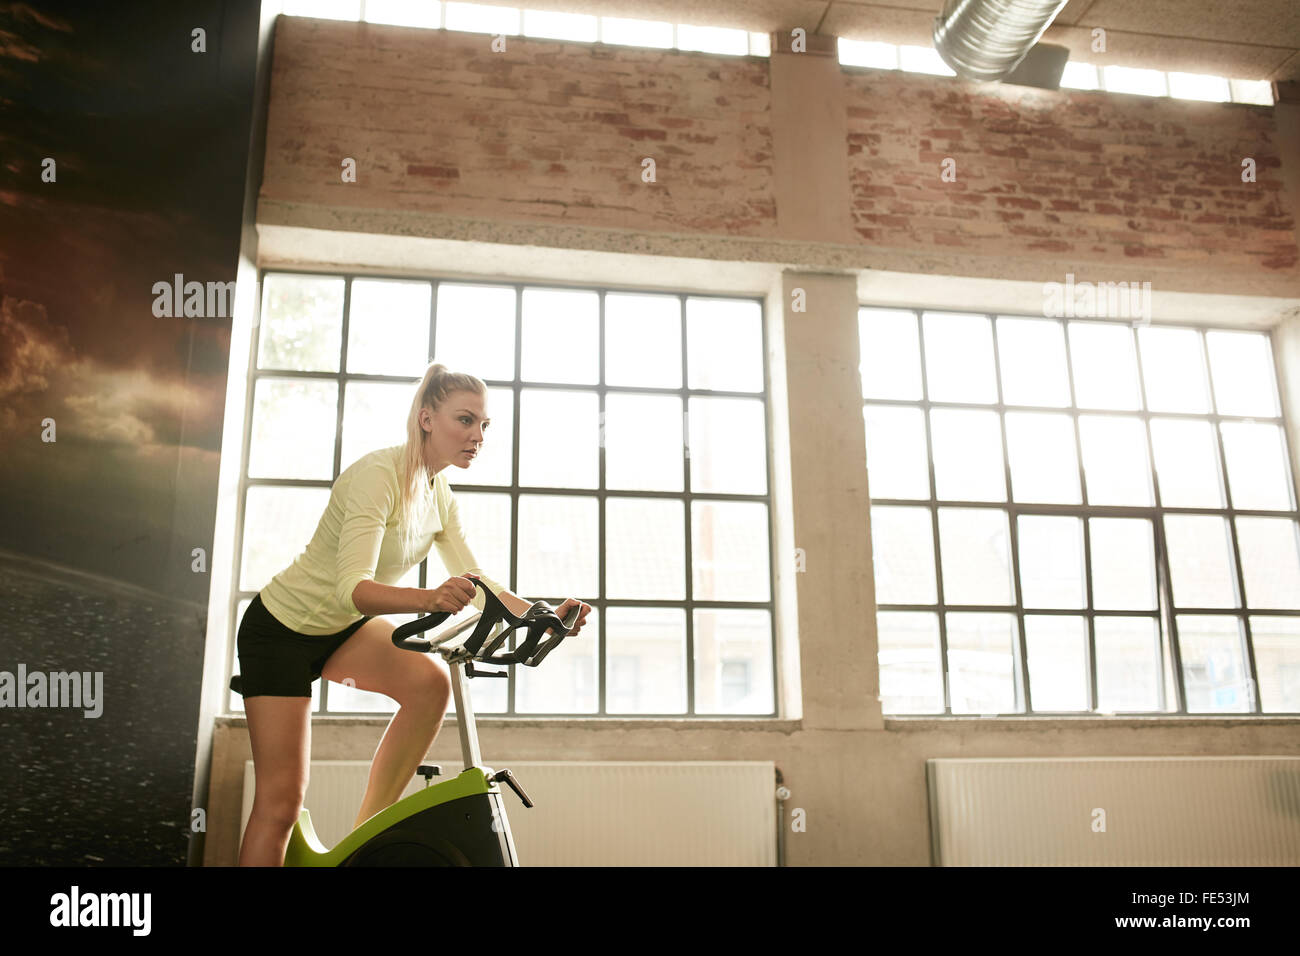 Fitness woman exercising on a spinning cycle in gym. Caucasian young female athlete doing fitness training on a - Stock Image